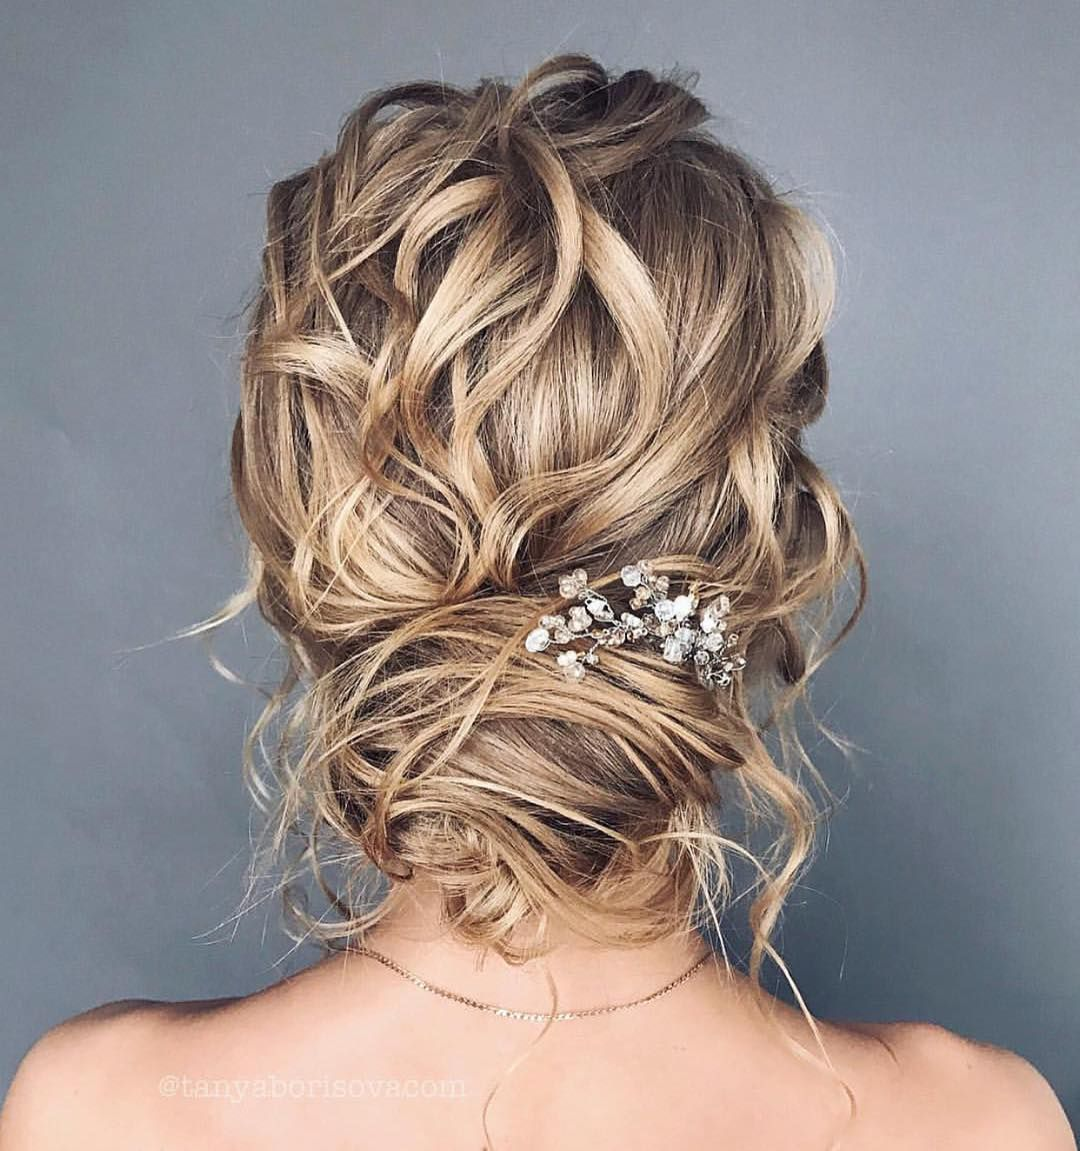 Messy updo wedding hairstyle